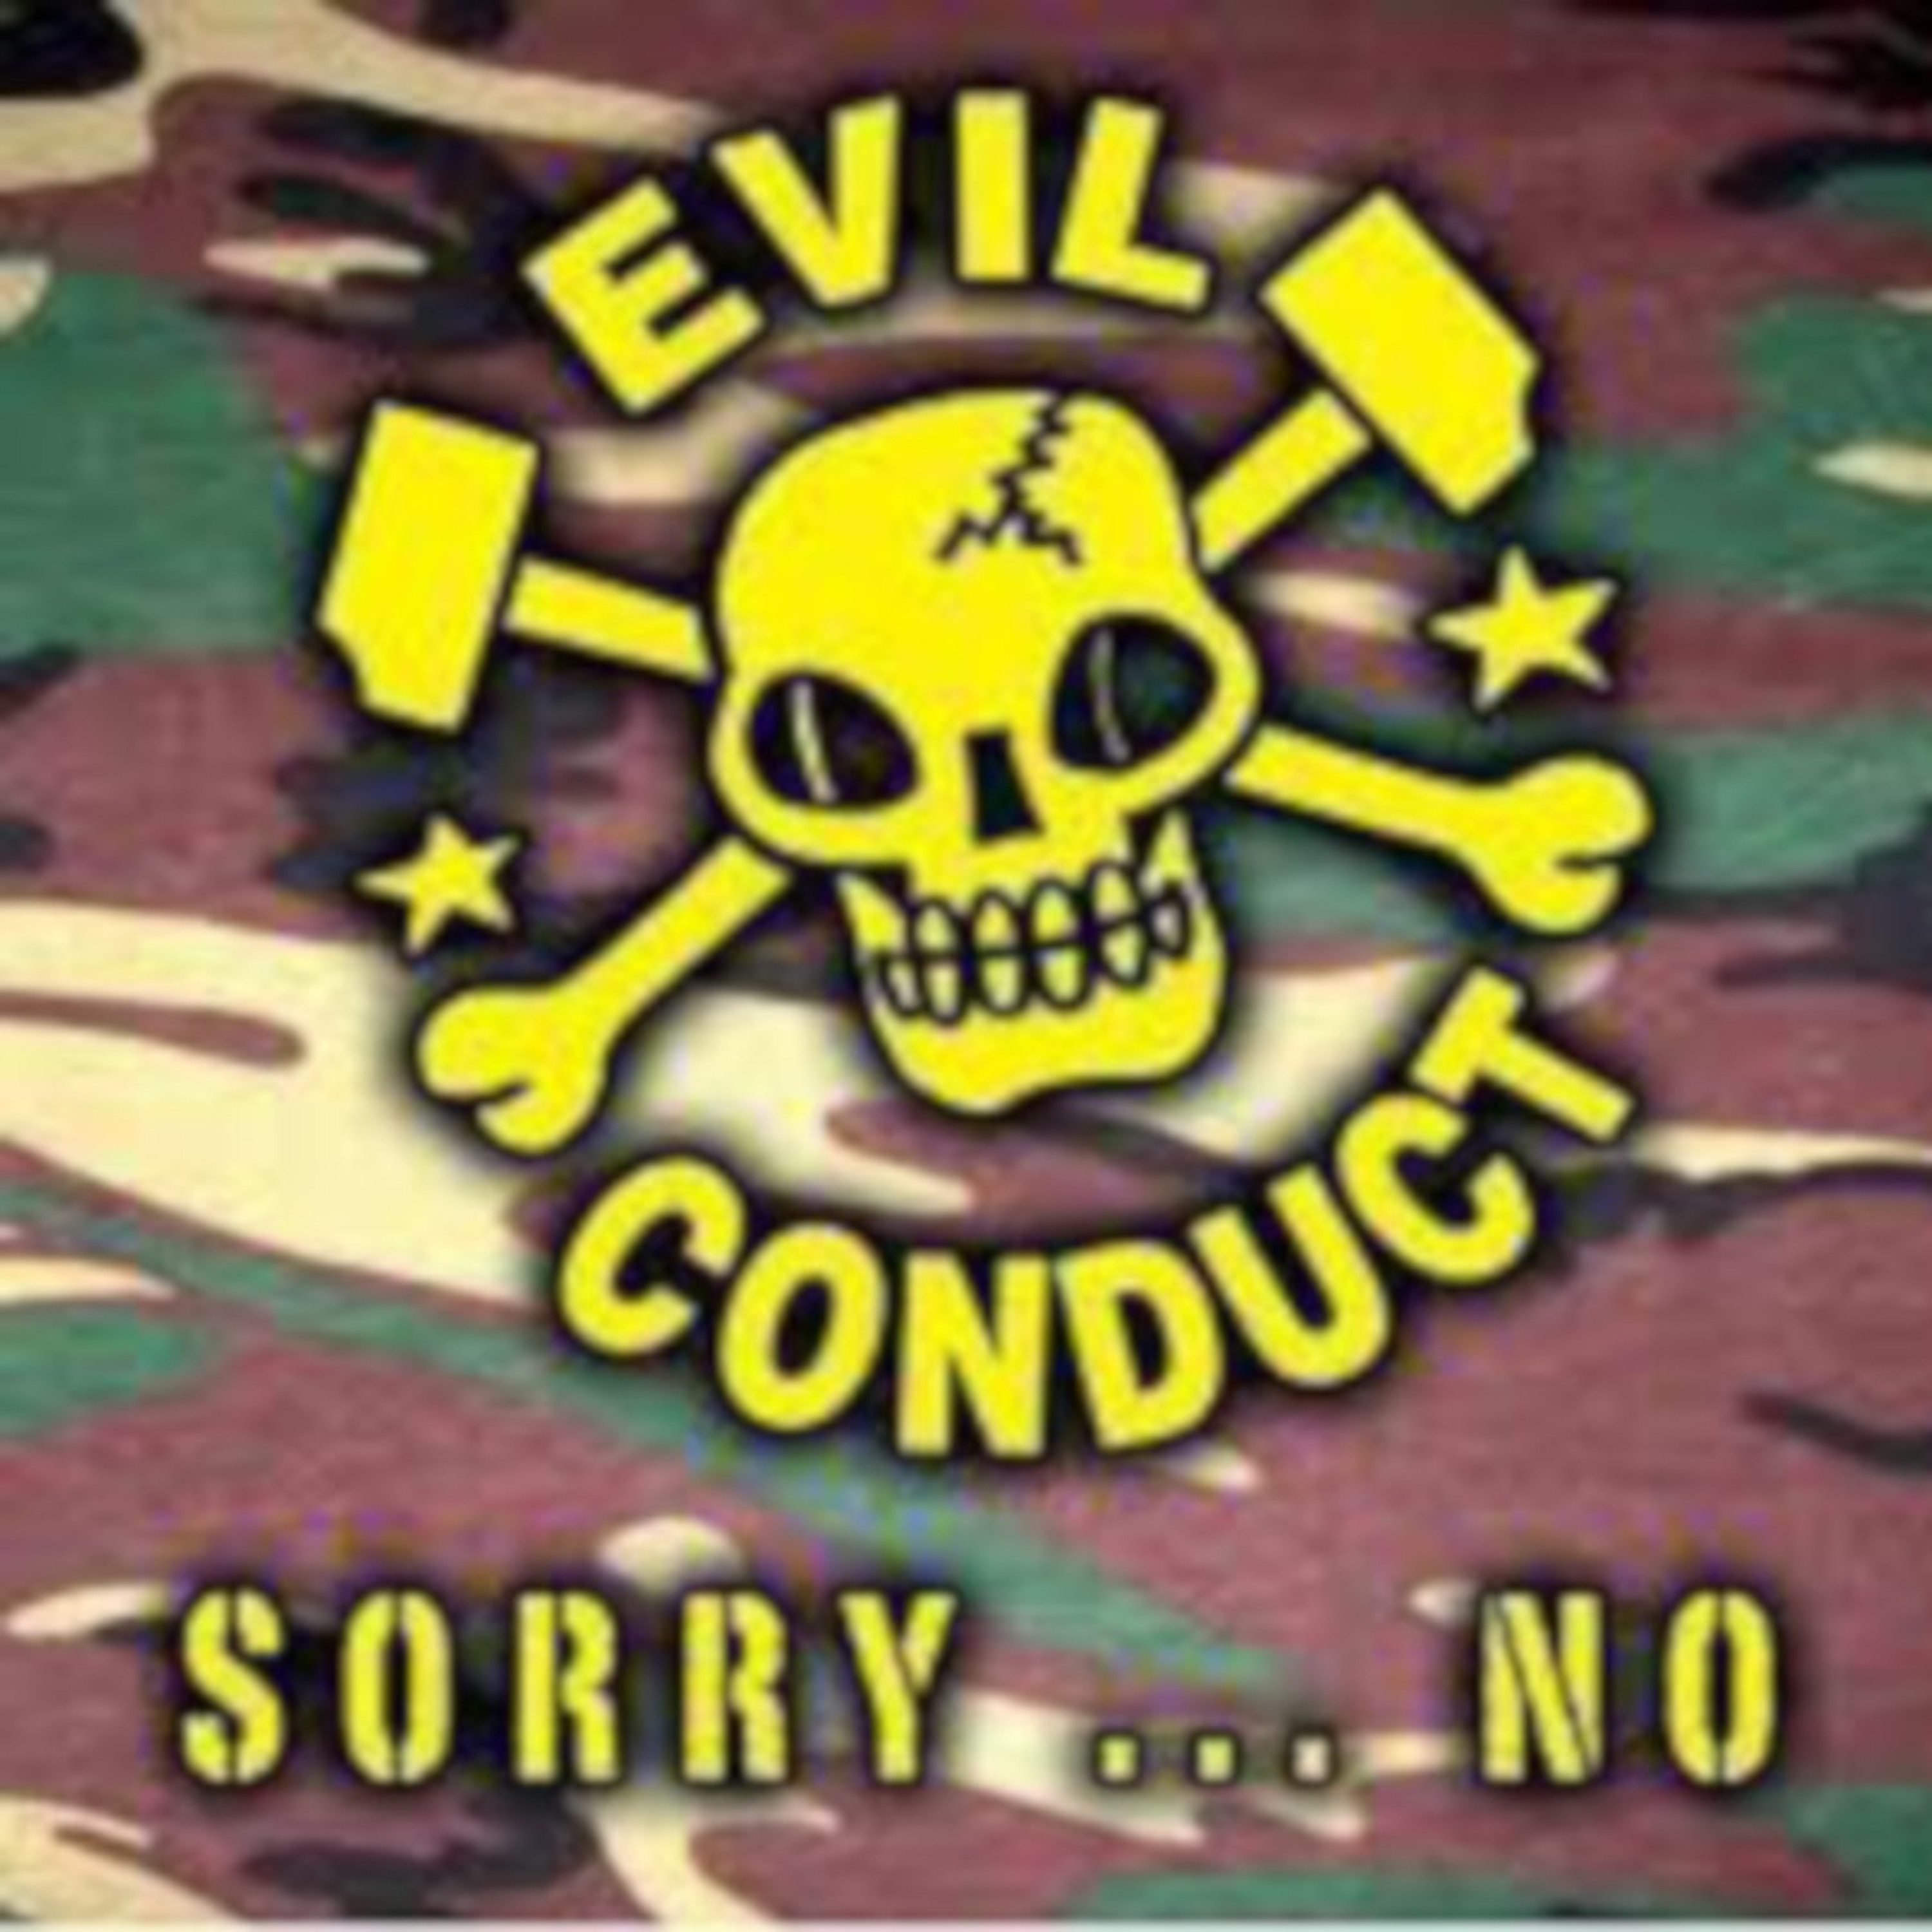 Evil Conduct Sorry No Cd Musik Cds